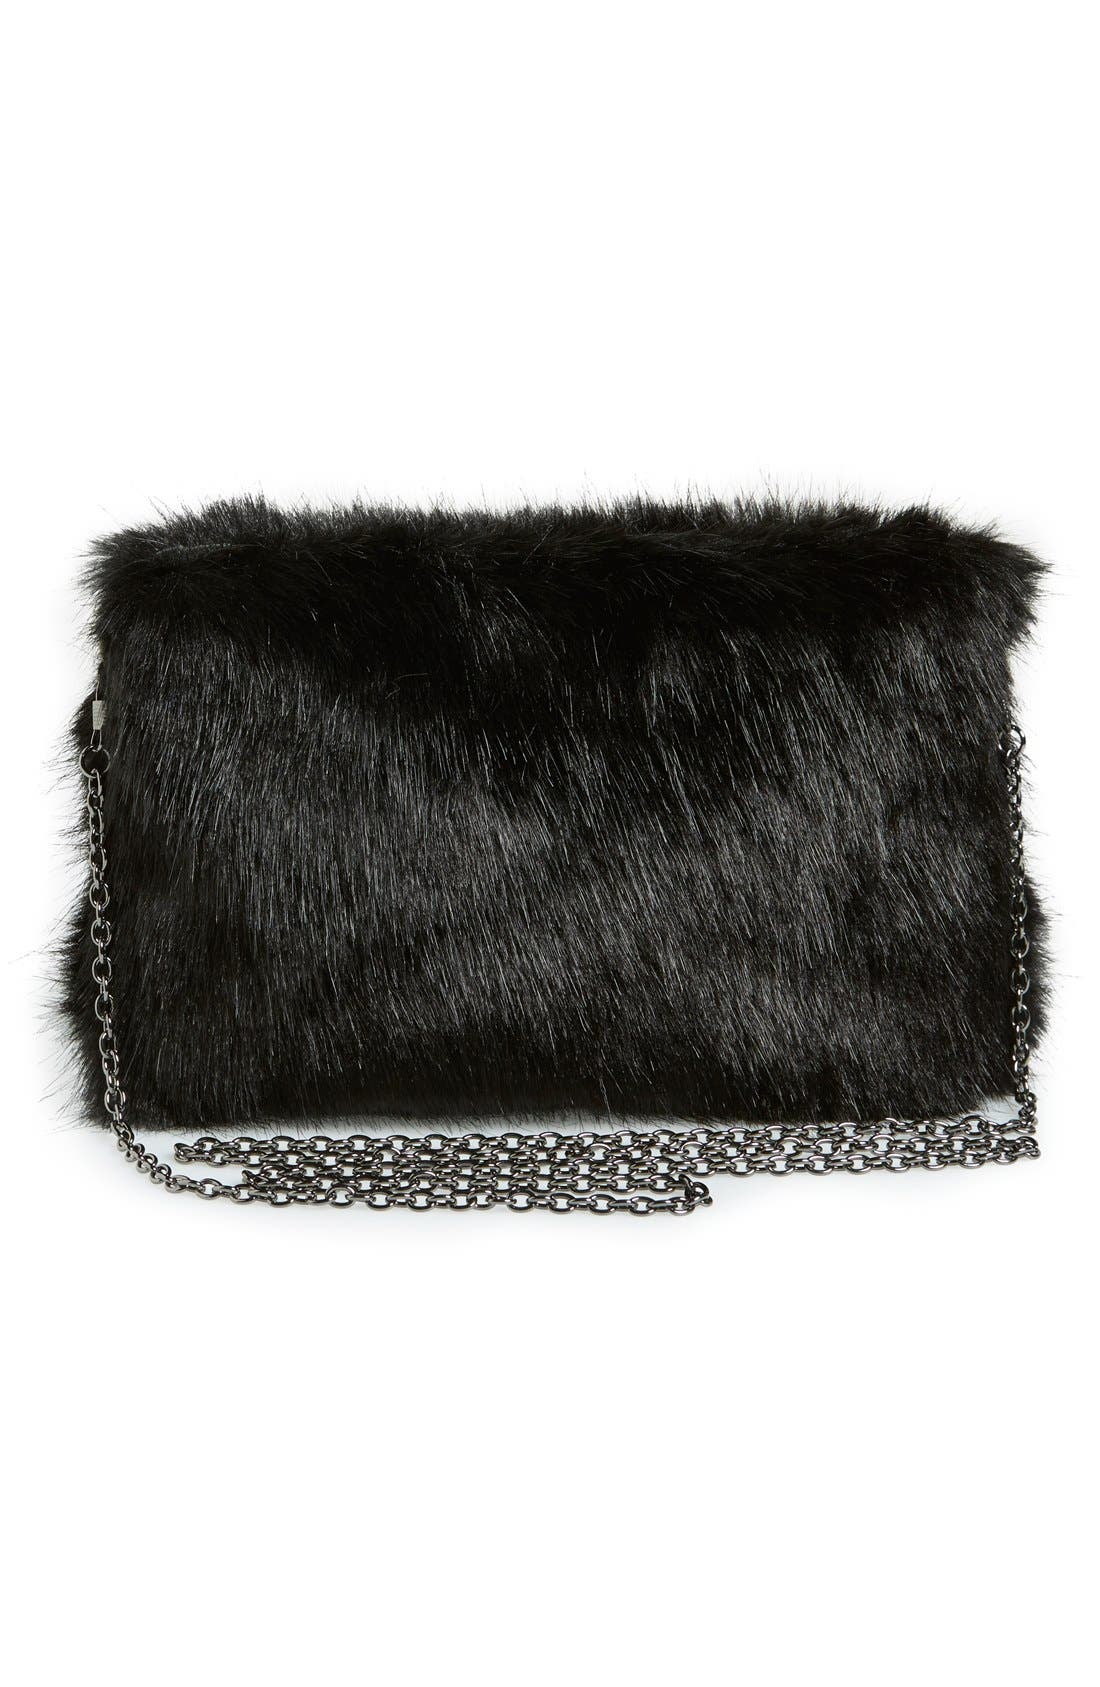 Alternate Image 3  - No Brand Needed Faux Fur Convertible Clutch